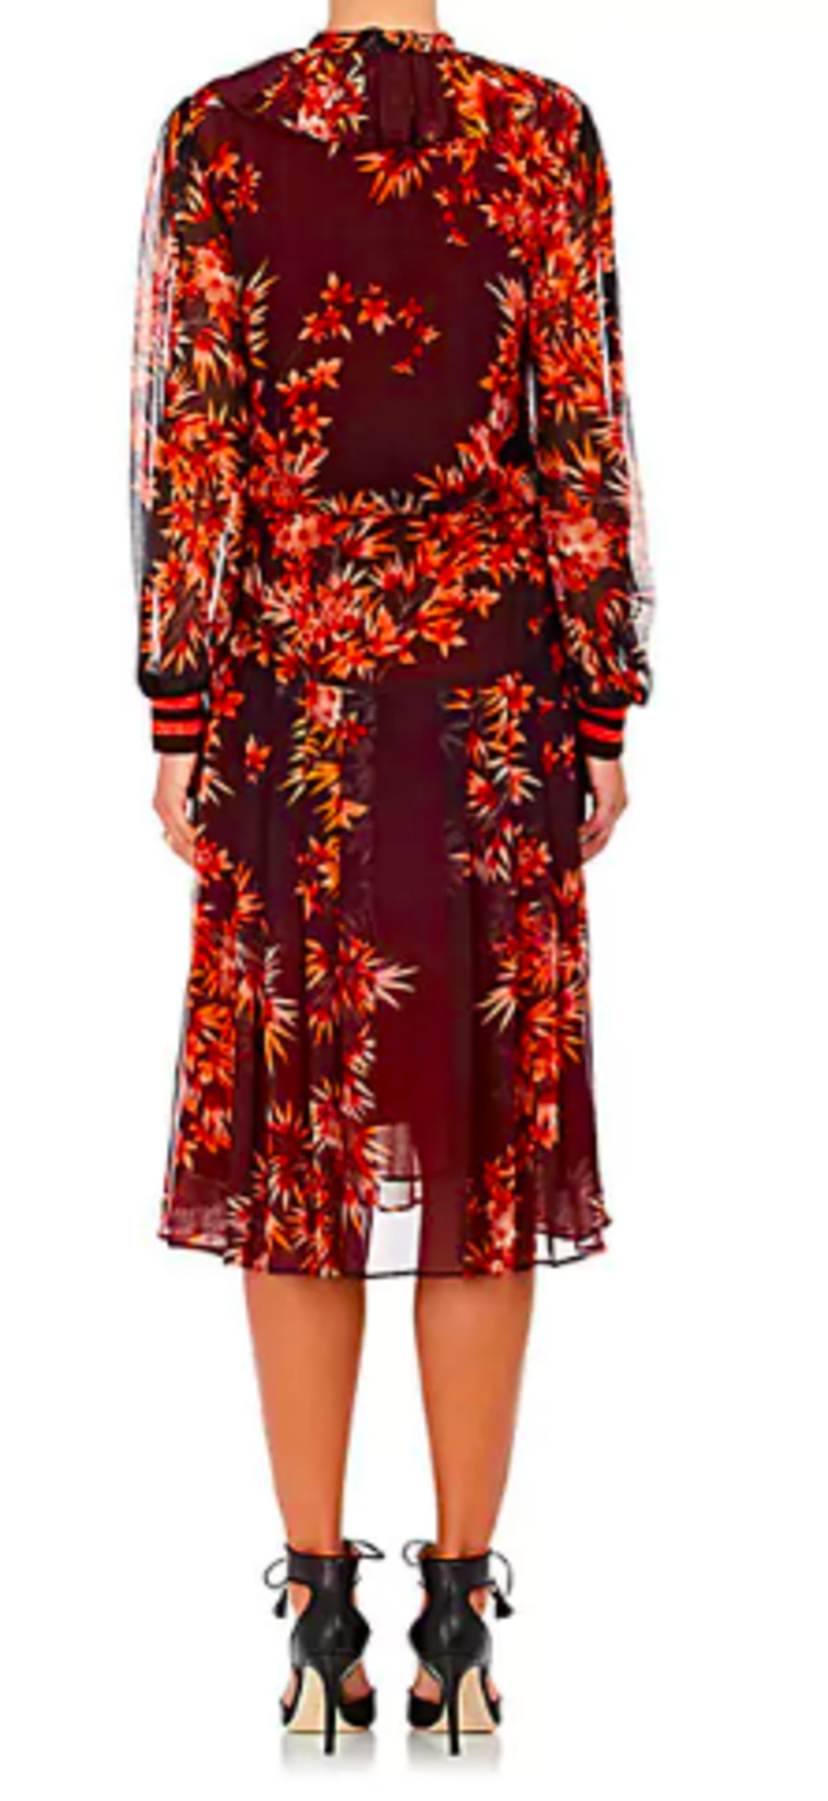 Warm Floral Chiffon Midi-Dress Dresses Sale